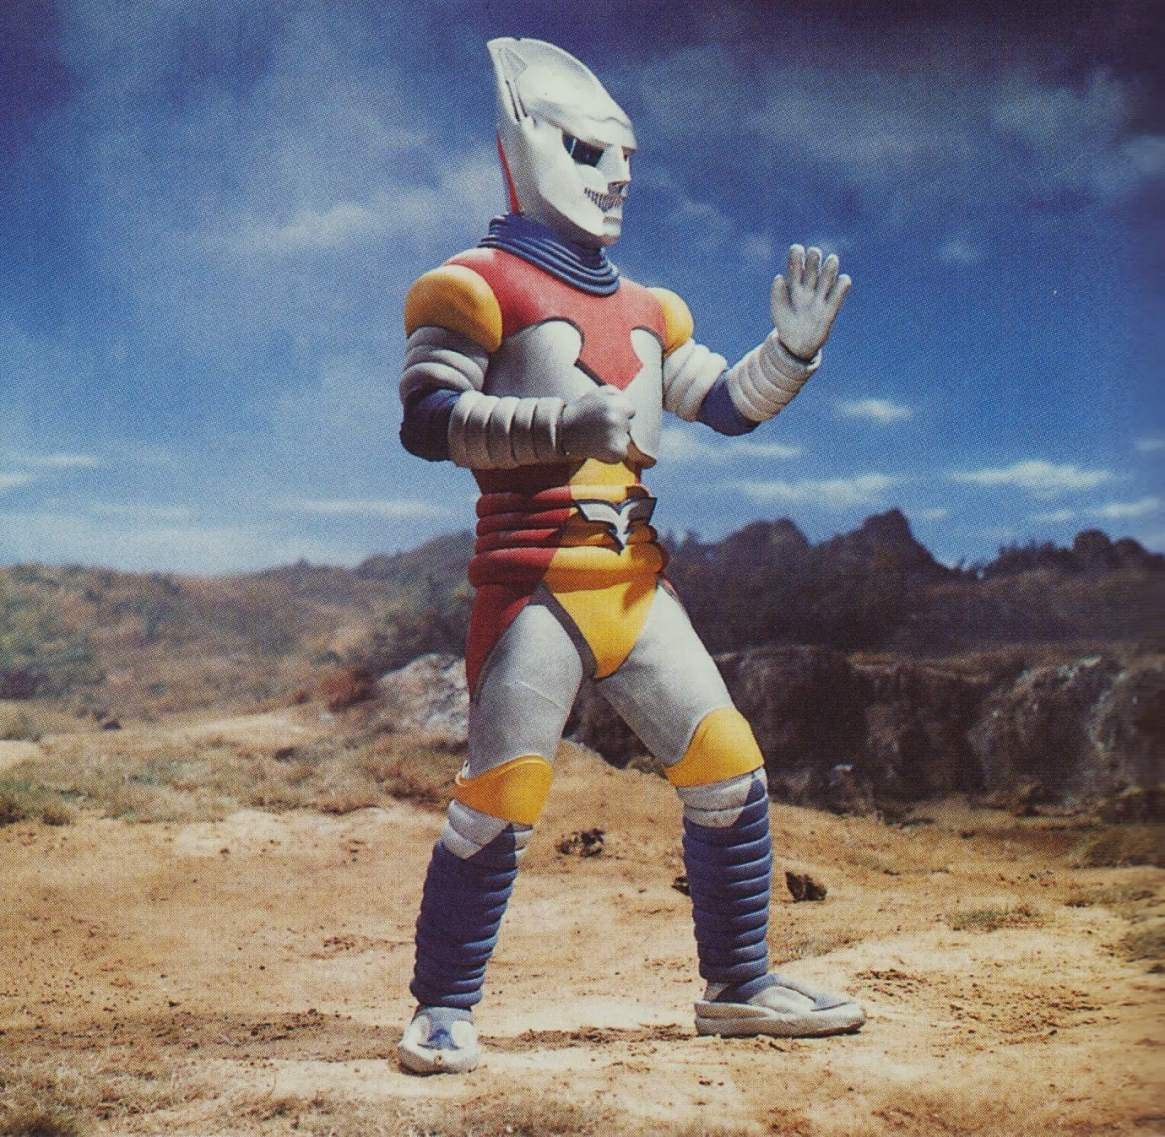 GVM_-_Jet_Jaguar_Action_Pose